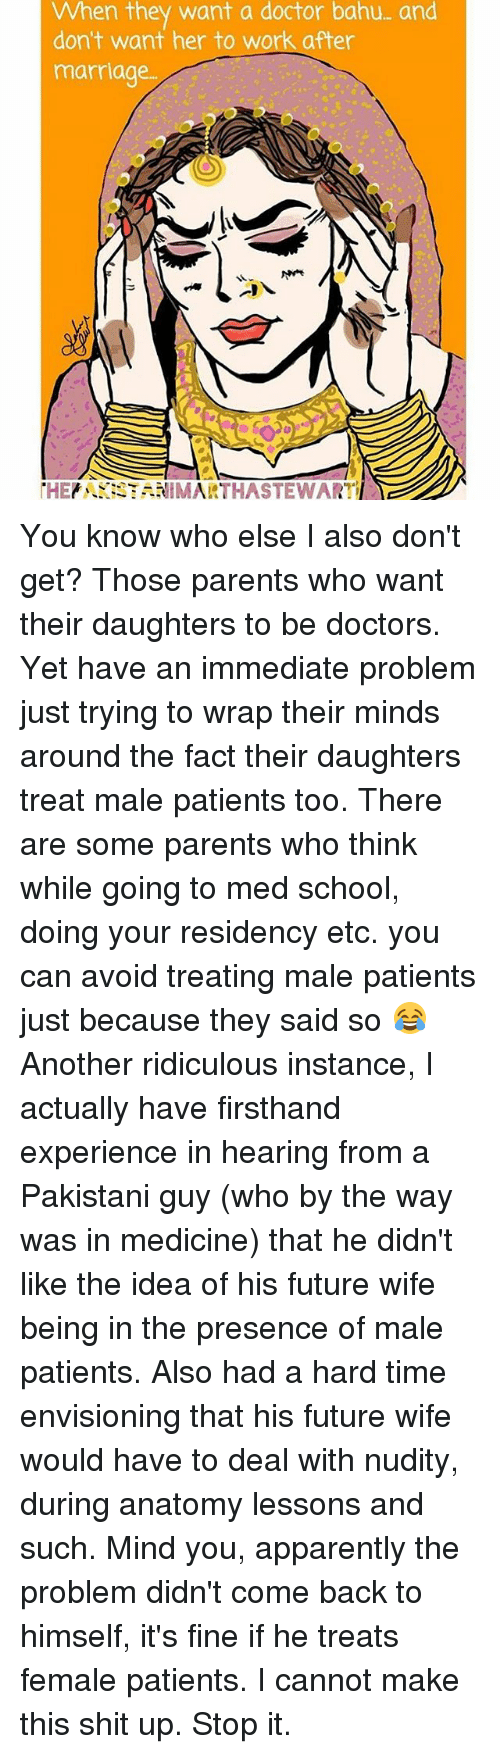 Memes, 🤖, and Idea: When they want a doctor bahu- and  don't want her to work after  marriage.  THE  NIMA You know who else I also don't get? Those parents who want their daughters to be doctors. Yet have an immediate problem just trying to wrap their minds around the fact their daughters treat male patients too. There are some parents who think while going to med school, doing your residency etc. you can avoid treating male patients just because they said so 😂 Another ridiculous instance, I actually have firsthand experience in hearing from a Pakistani guy (who by the way was in medicine) that he didn't like the idea of his future wife being in the presence of male patients. Also had a hard time envisioning that his future wife would have to deal with nudity, during anatomy lessons and such. Mind you, apparently the problem didn't come back to himself, it's fine if he treats female patients. I cannot make this shit up. Stop it.